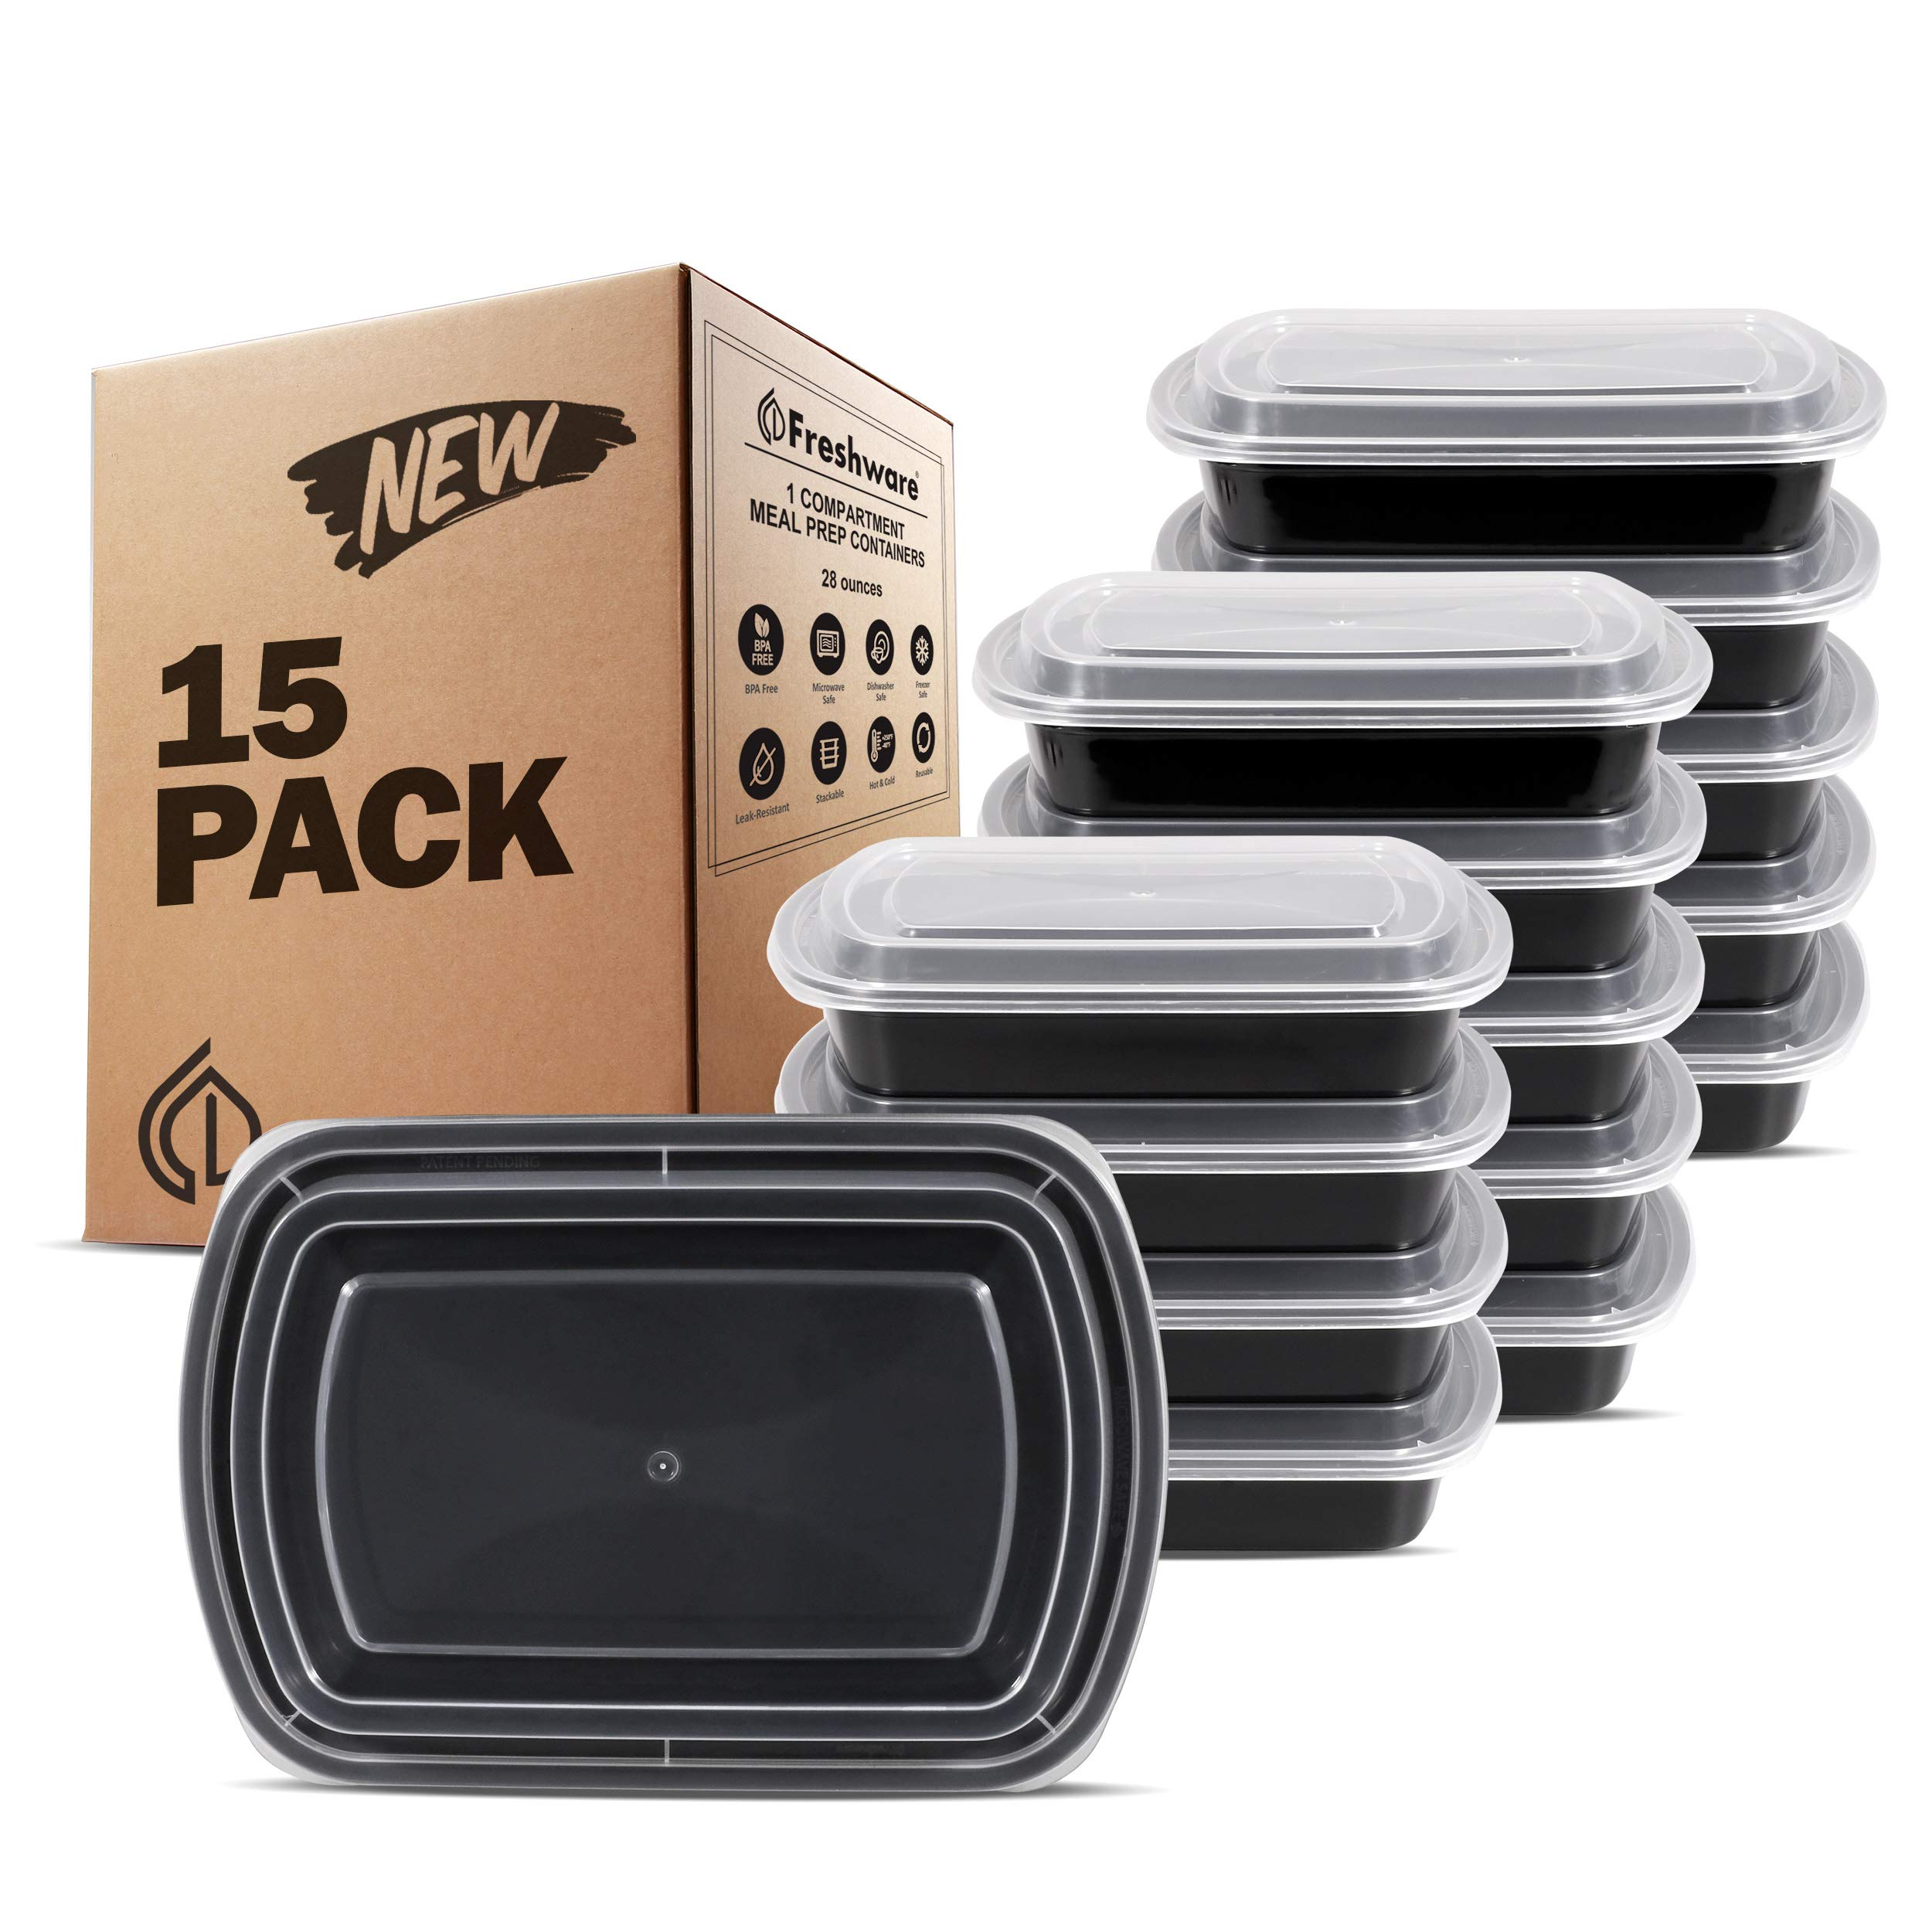 Freshware Meal Prep Containers [15 Pack] 1 Compartment with Lids, Food Storage Containers Bento Box | BPA Free | Stackable | Lunch Boxes, Microwave/Dishwasher/Freezer Safe (28 oz) by Freshware